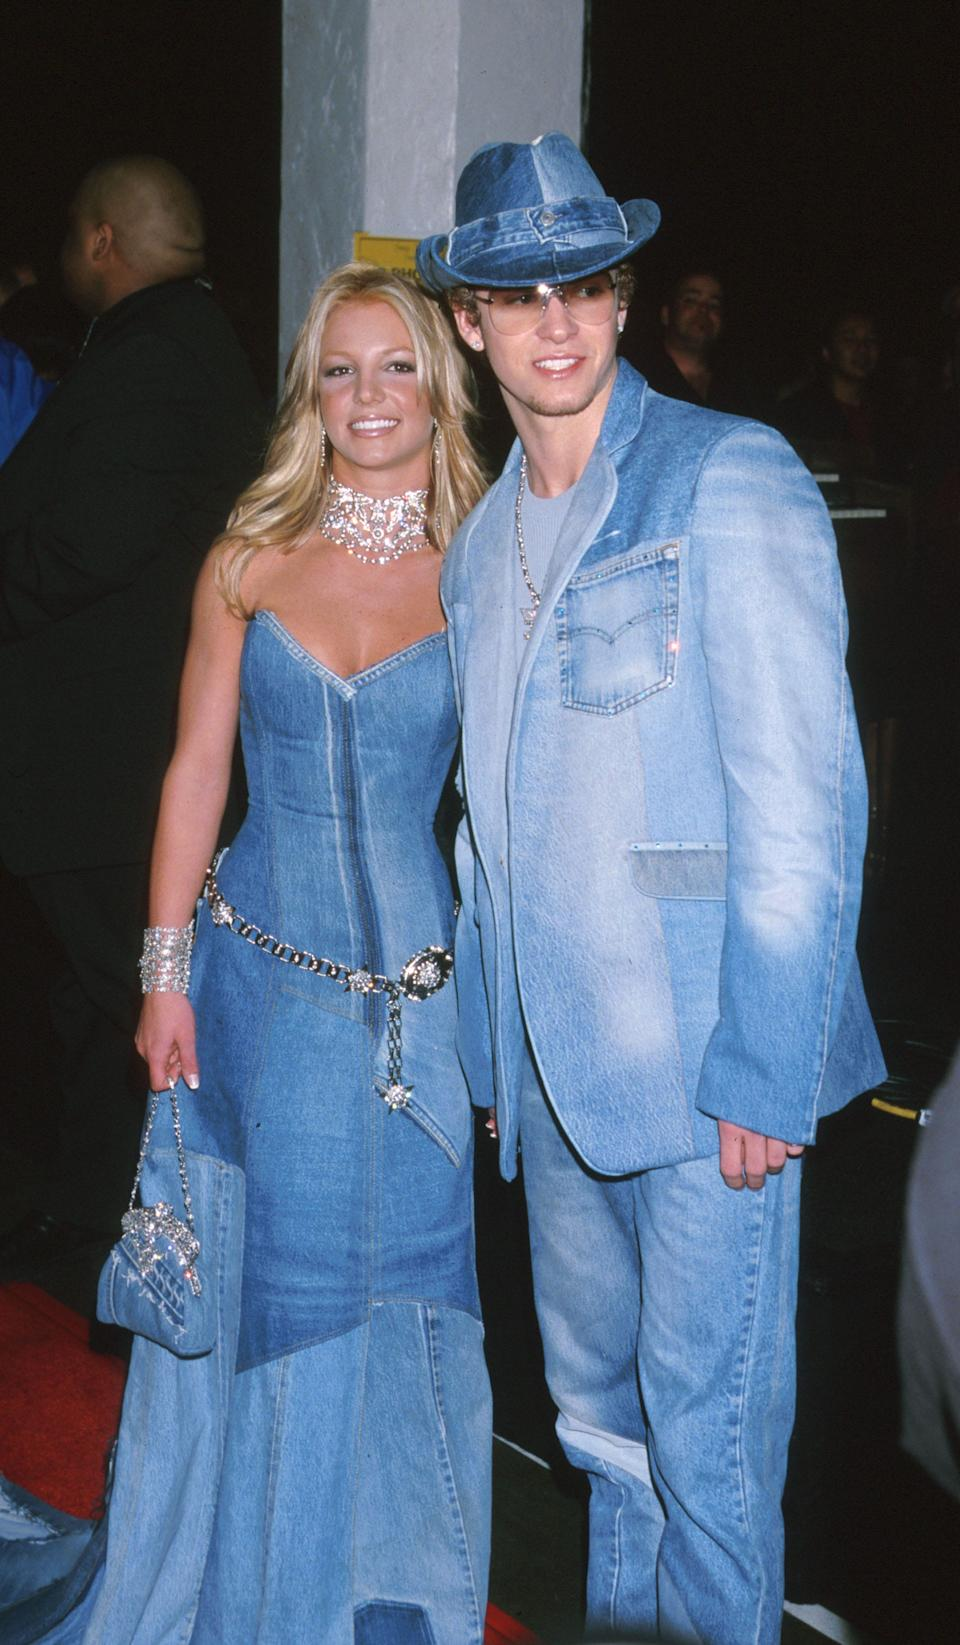 Britney Spears and Justin Timberlake jean outfits